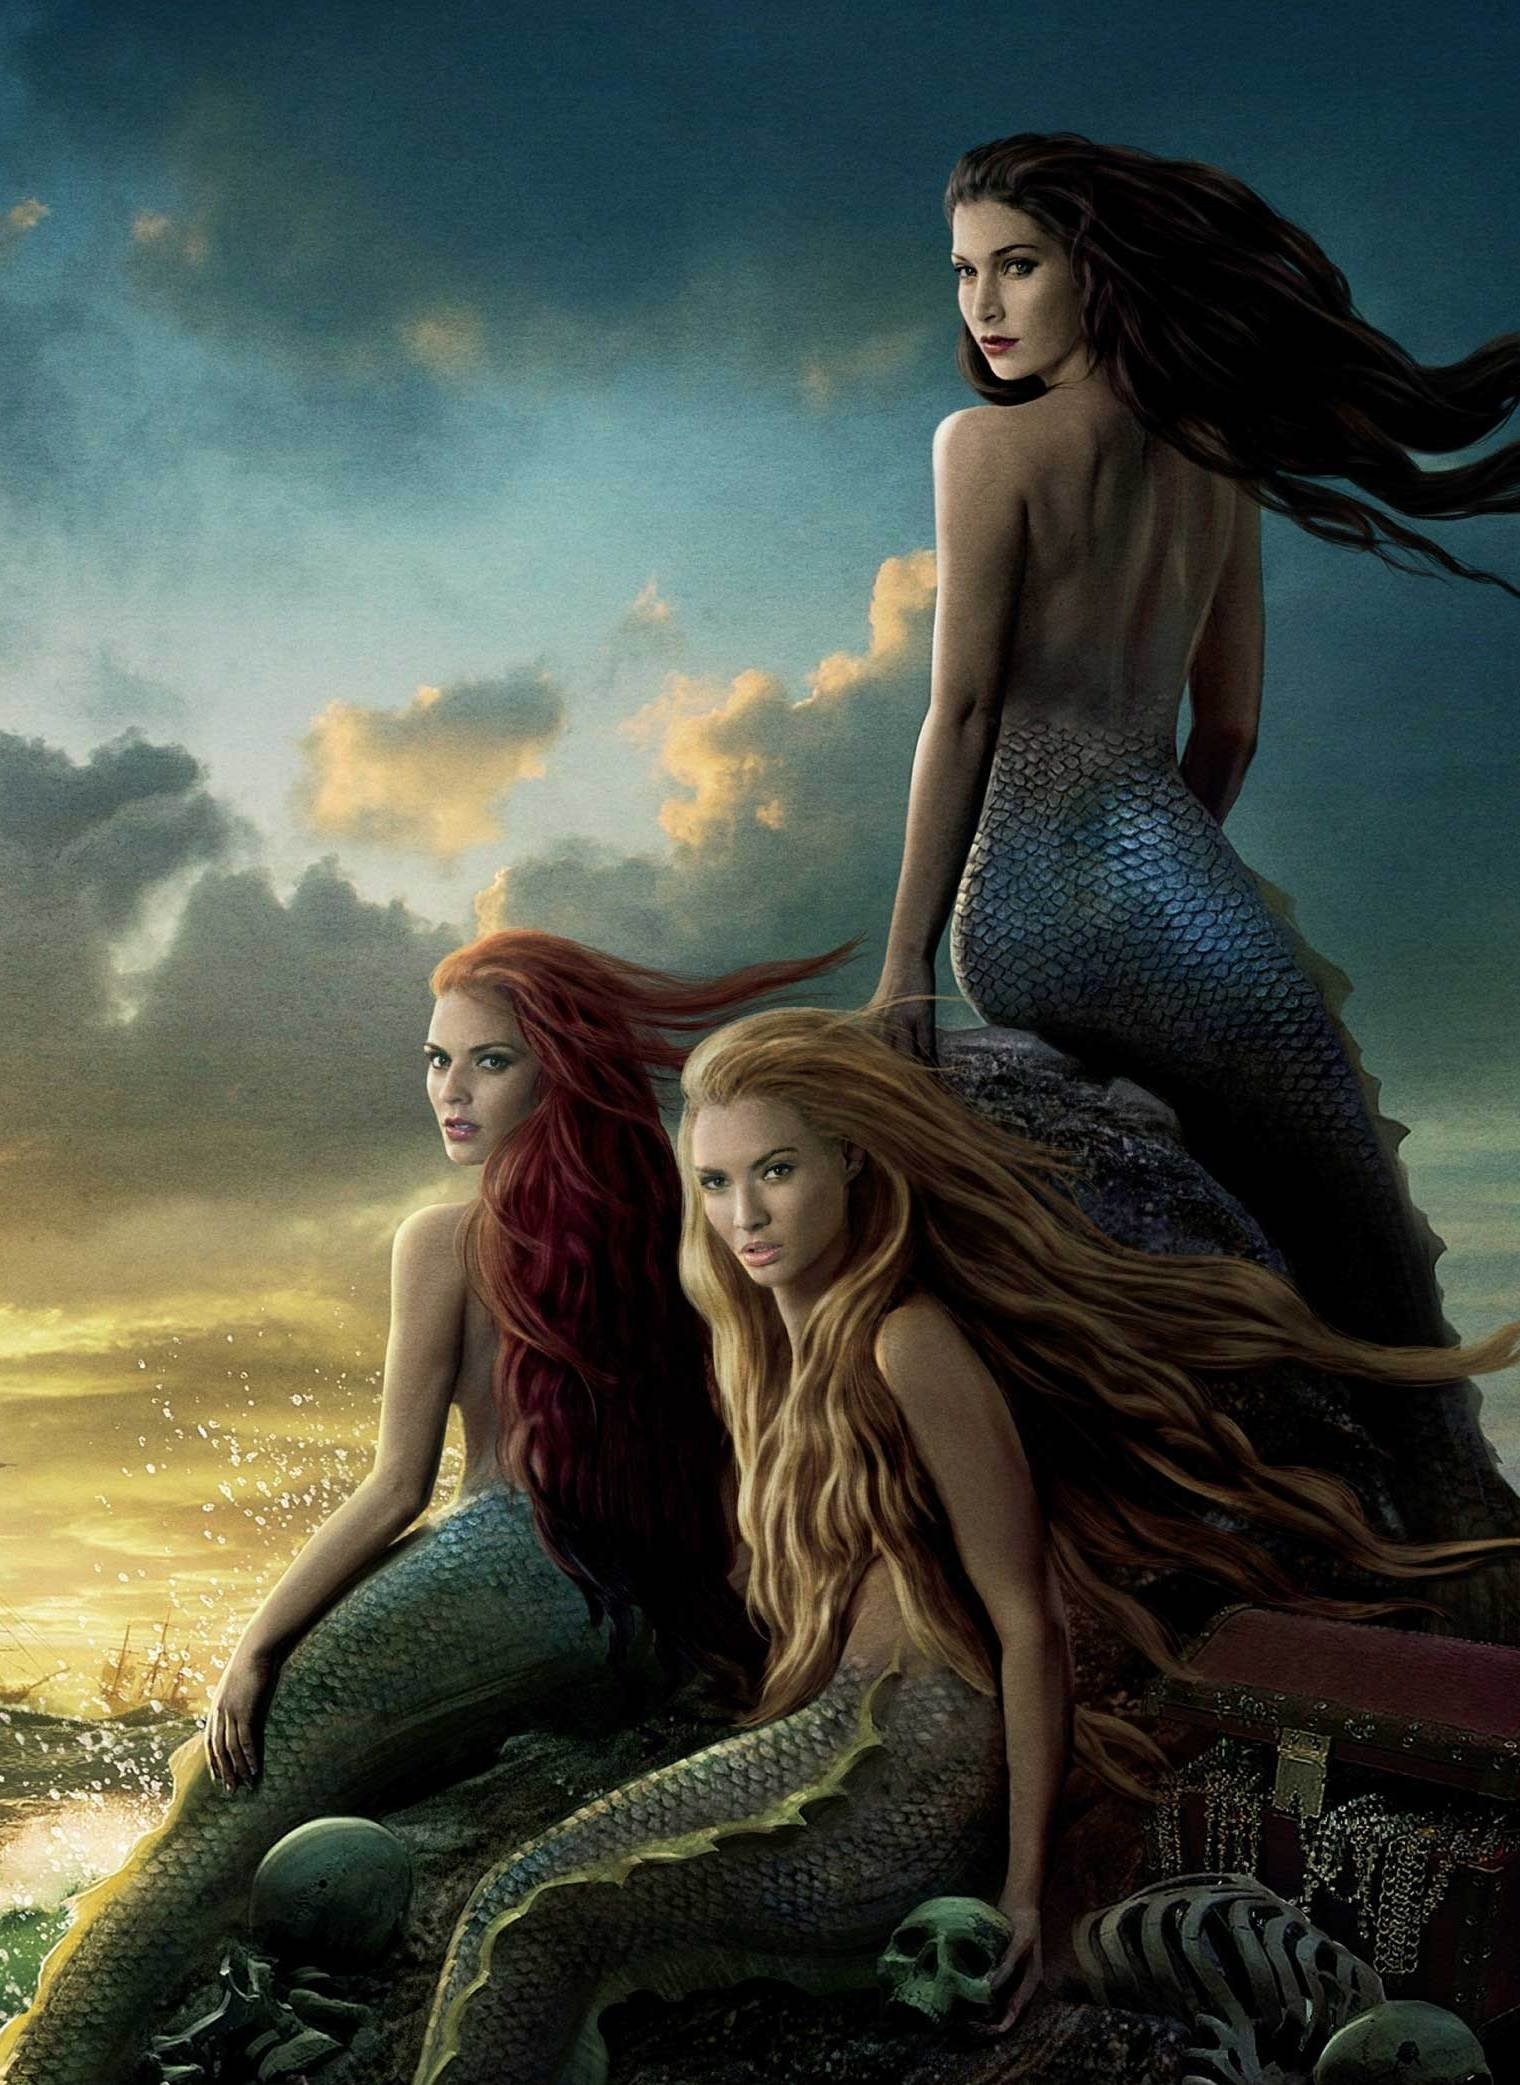 Mermaids with Scale Tails 730.22 Kb